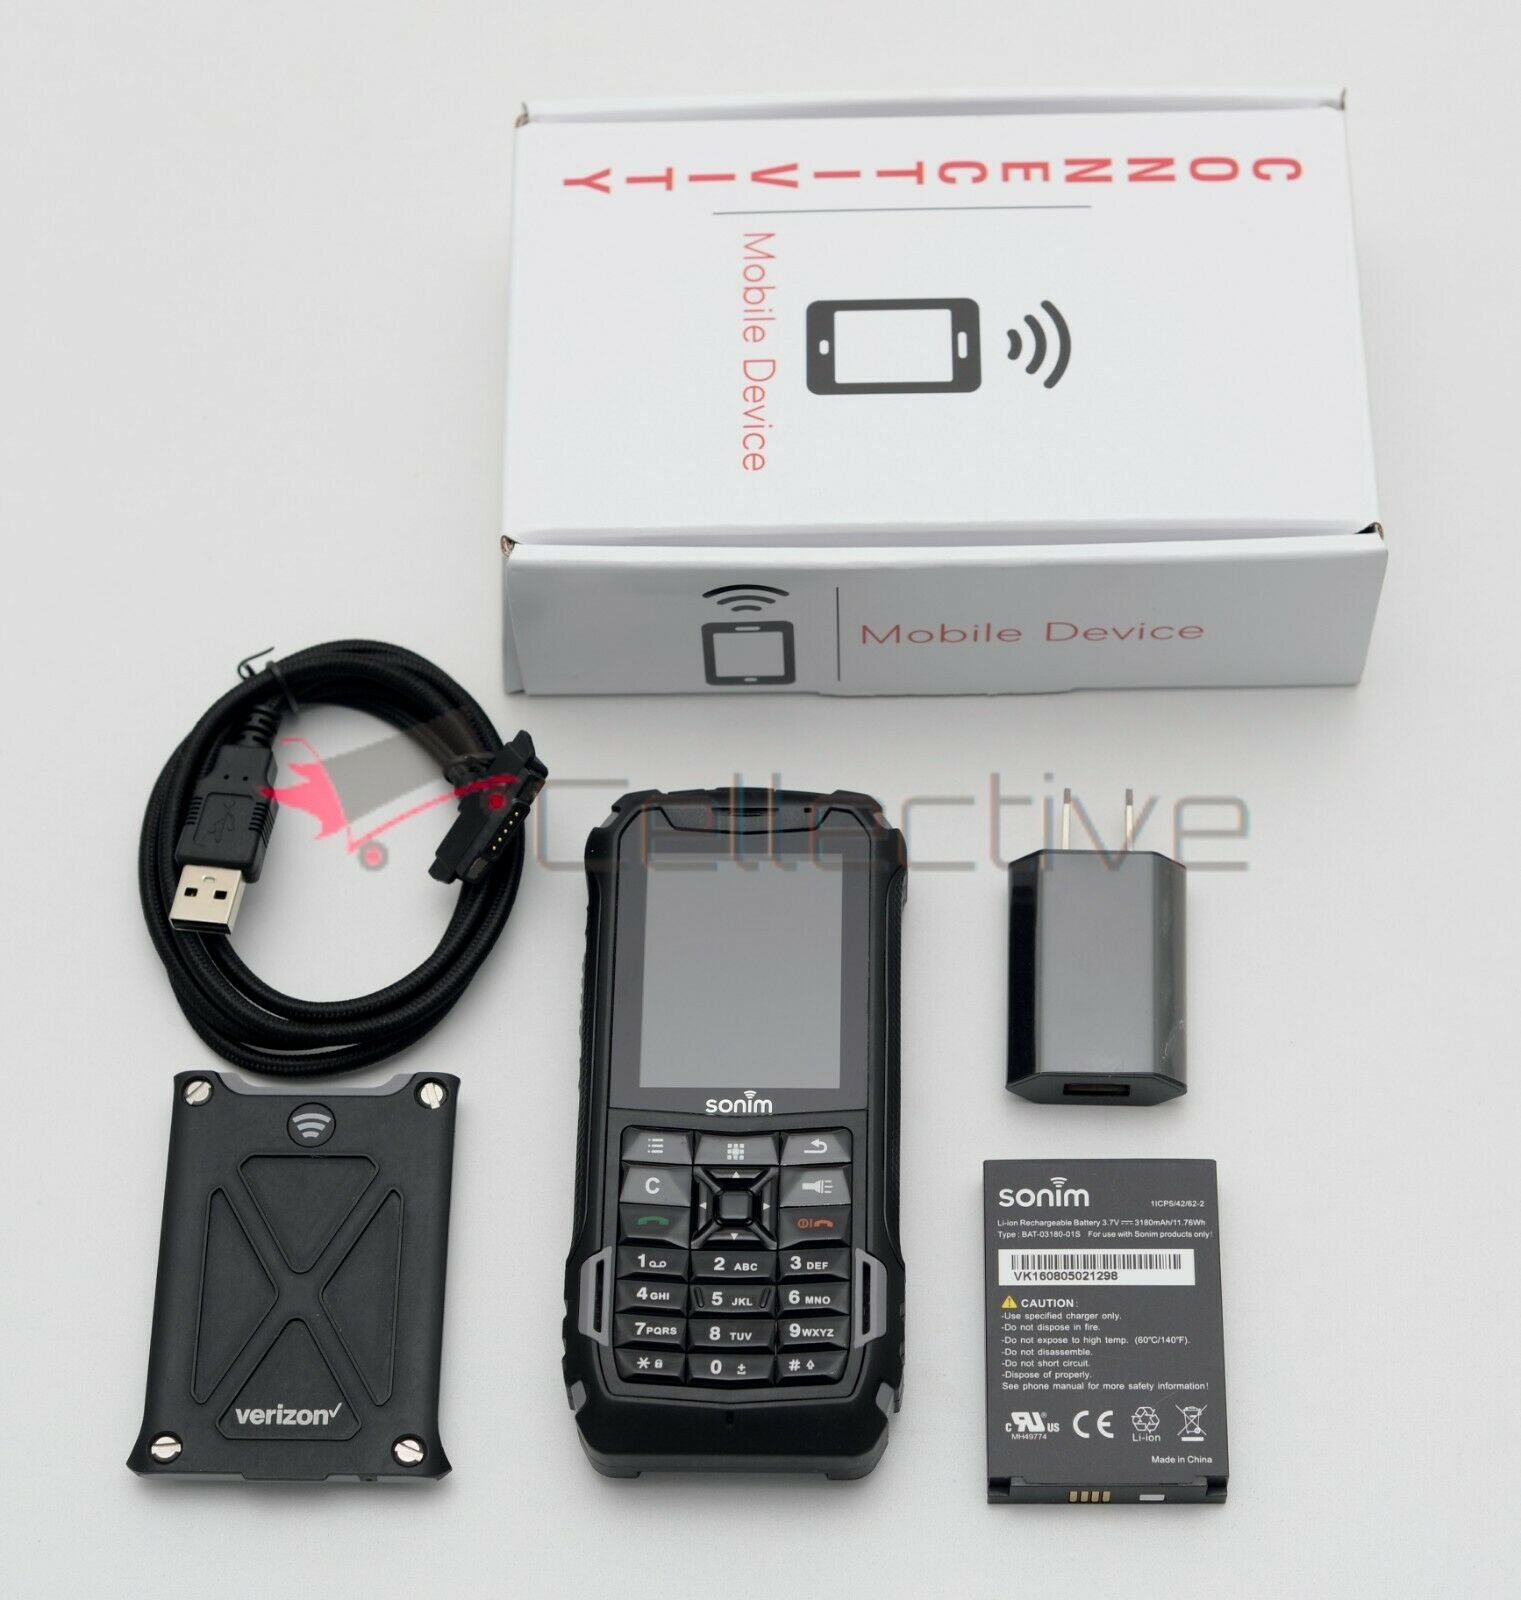 Android Phone - Sonim XP5 XP5700 Verizon 4G LTE Android Waterproof Military Rugged Phone PTT+